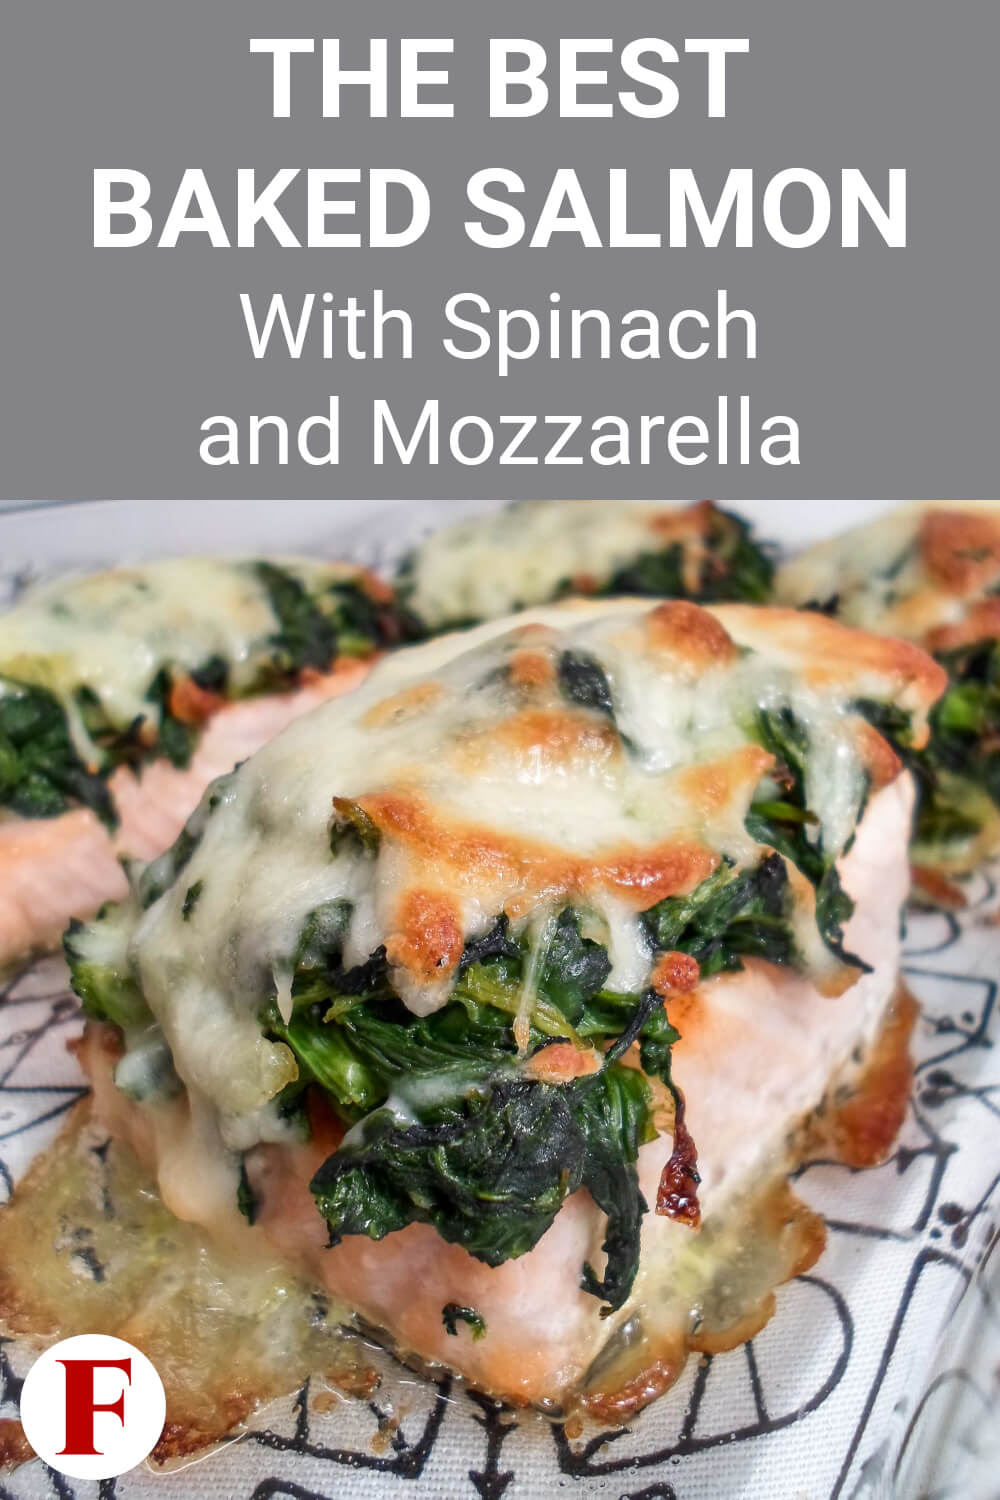 Baked Salmon with Spinach and Mozzarella